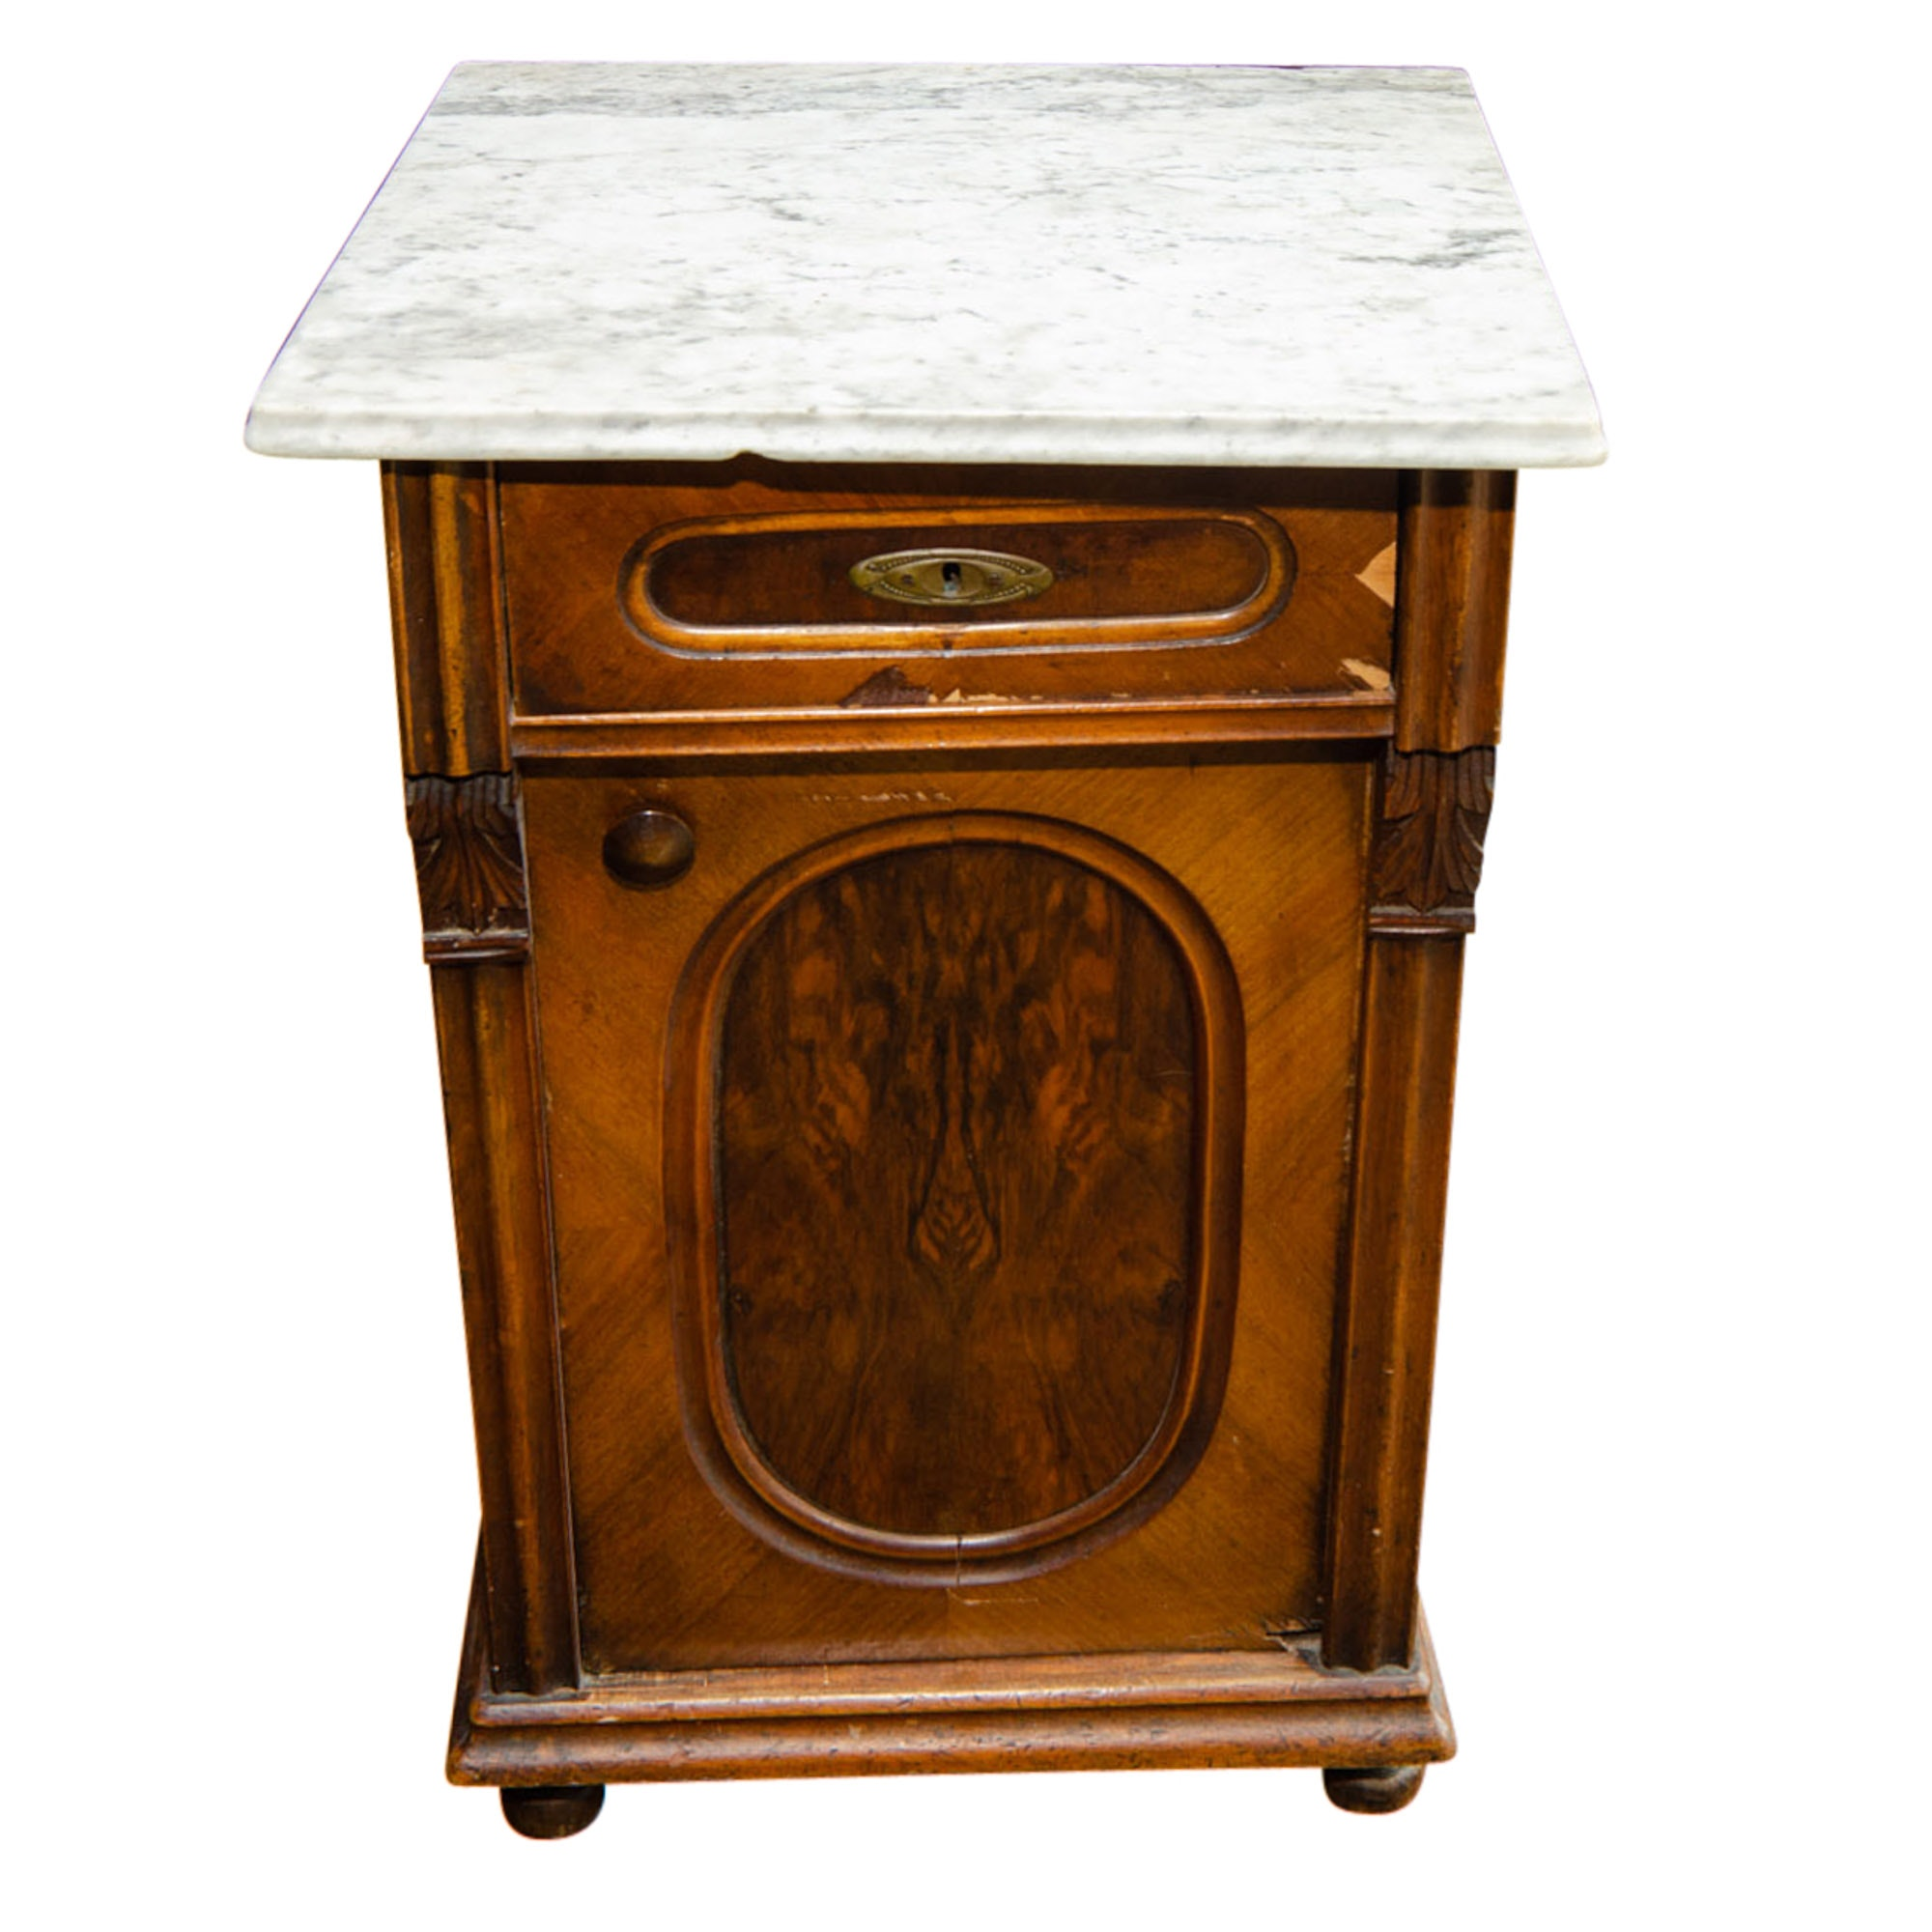 Antique Marble Topped Bedside Cabinet